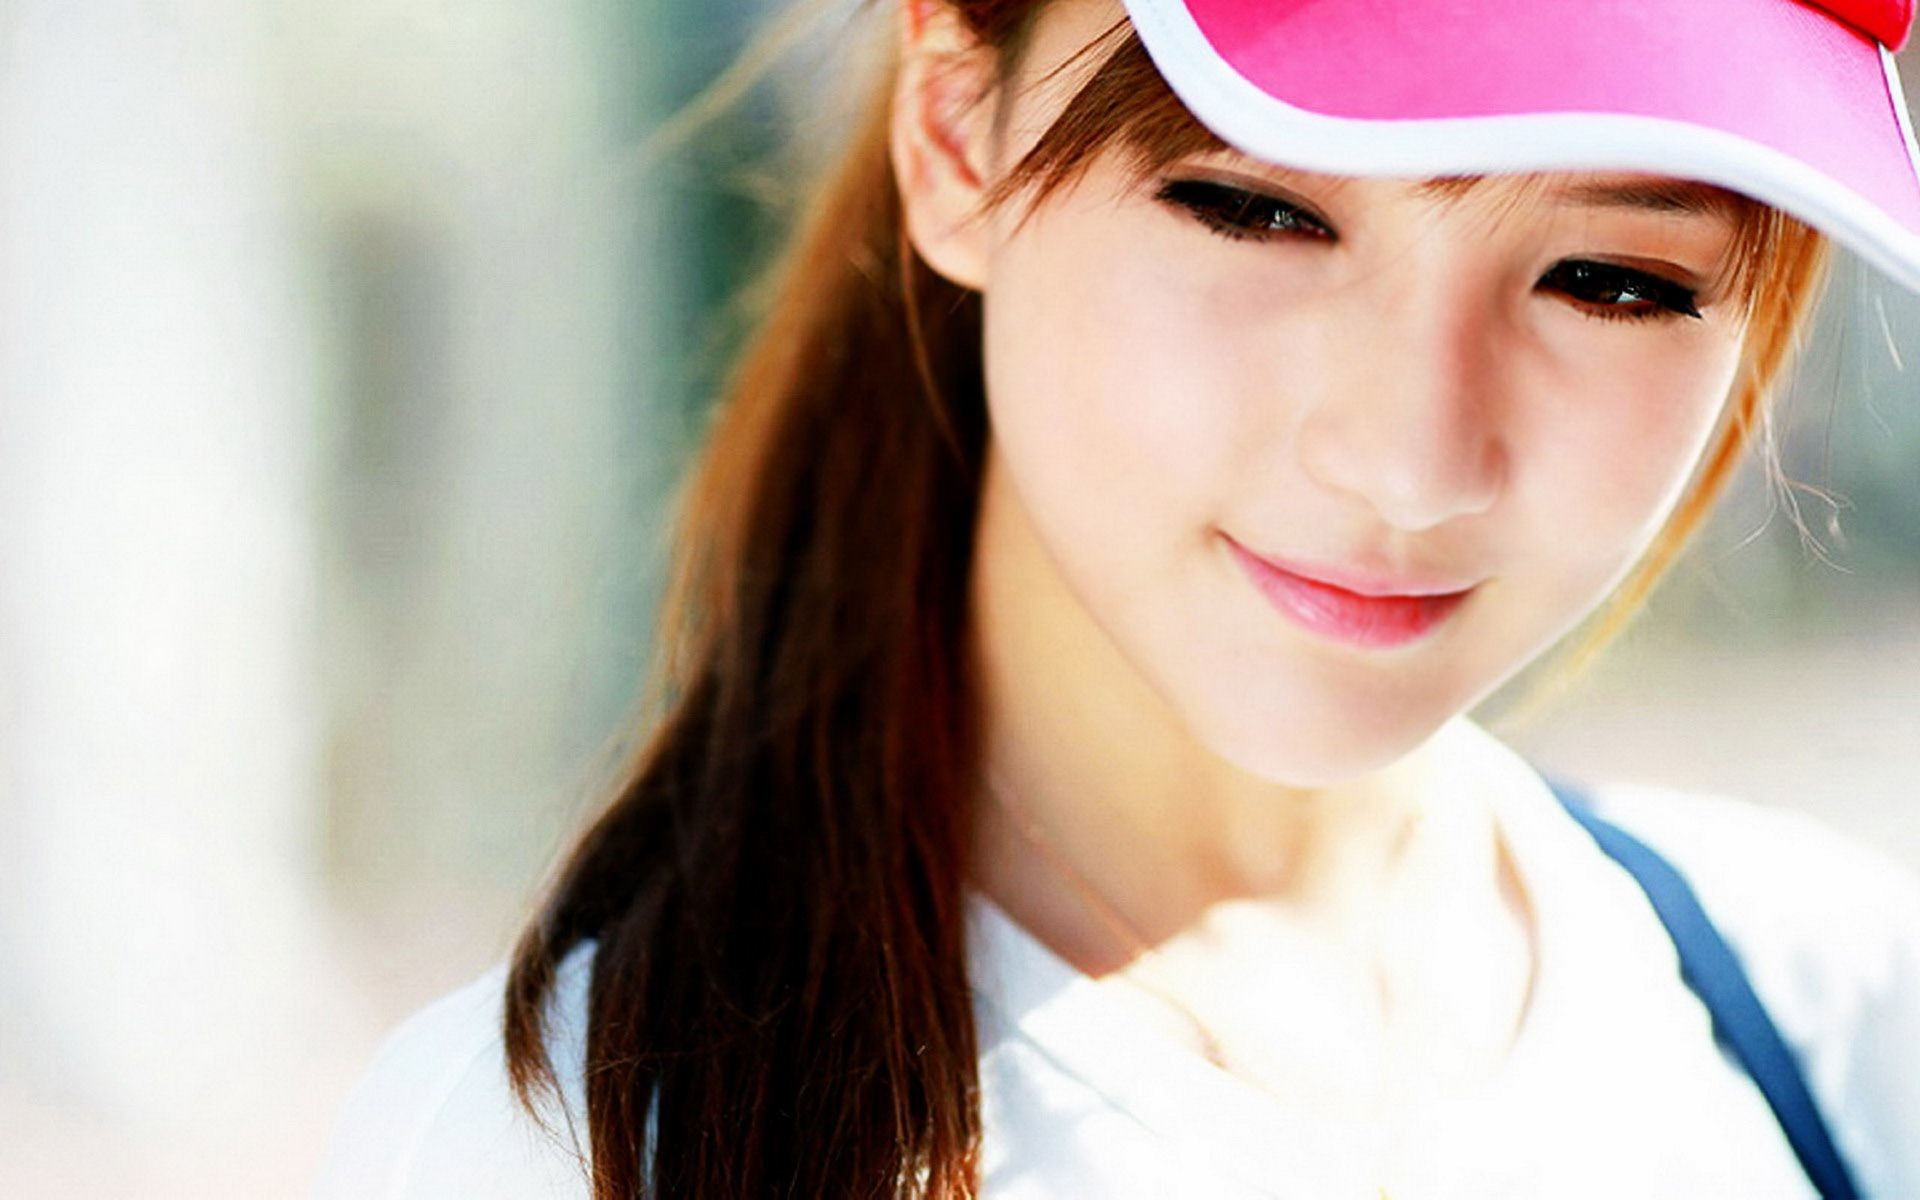 Cute and Beautiful Girls Wallpapers Most Cute Girl Wallpapers Wallpapers)